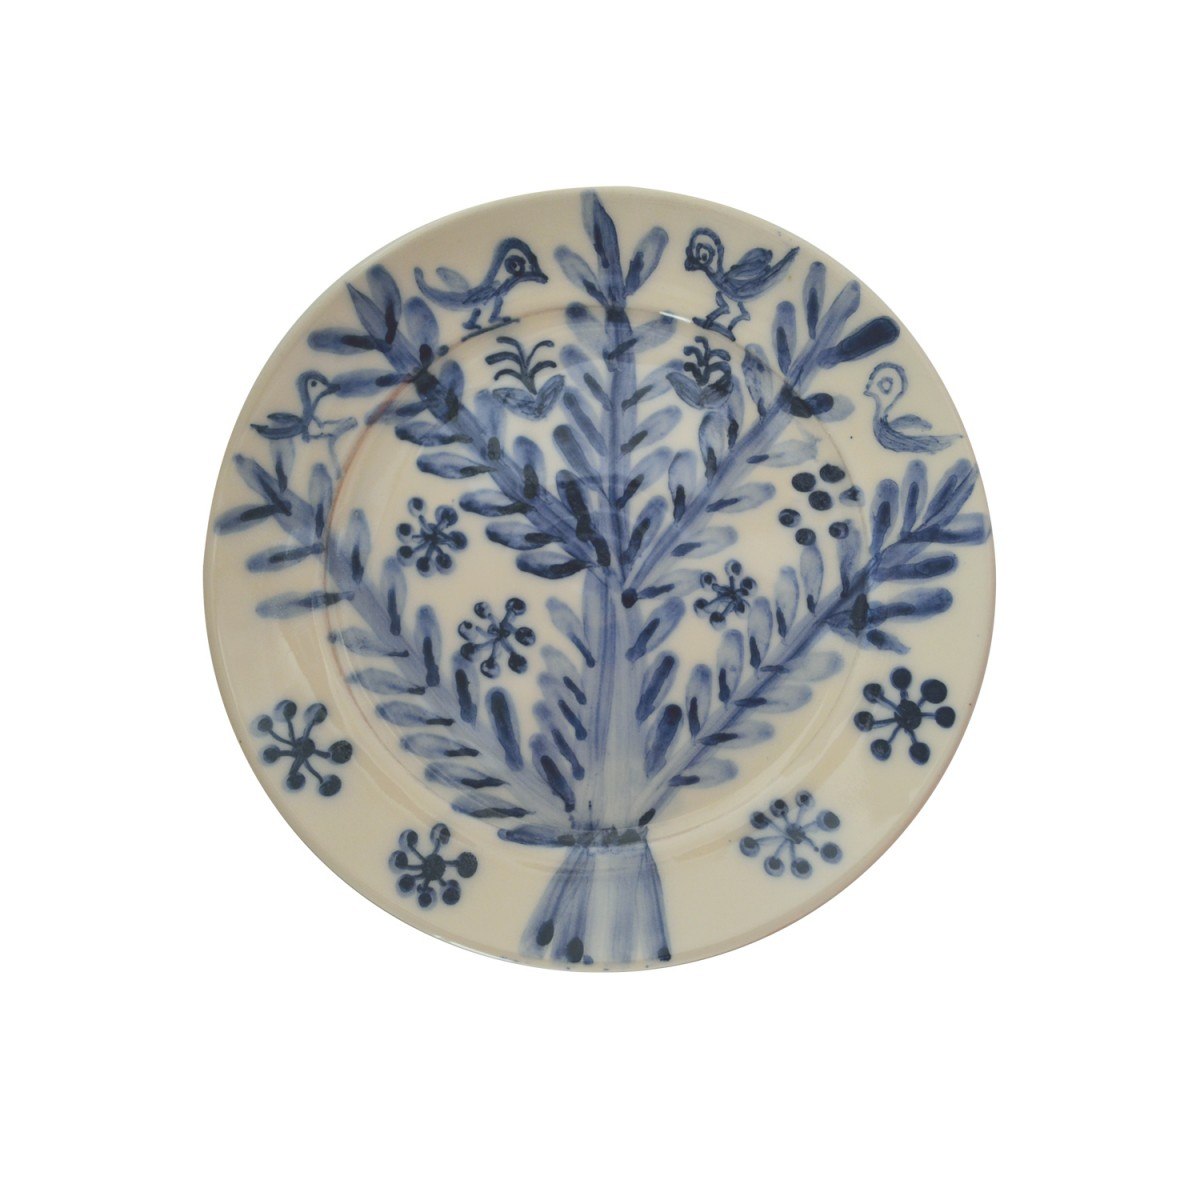 10011-Tree_Hand-made_Ceramic_Plate-1